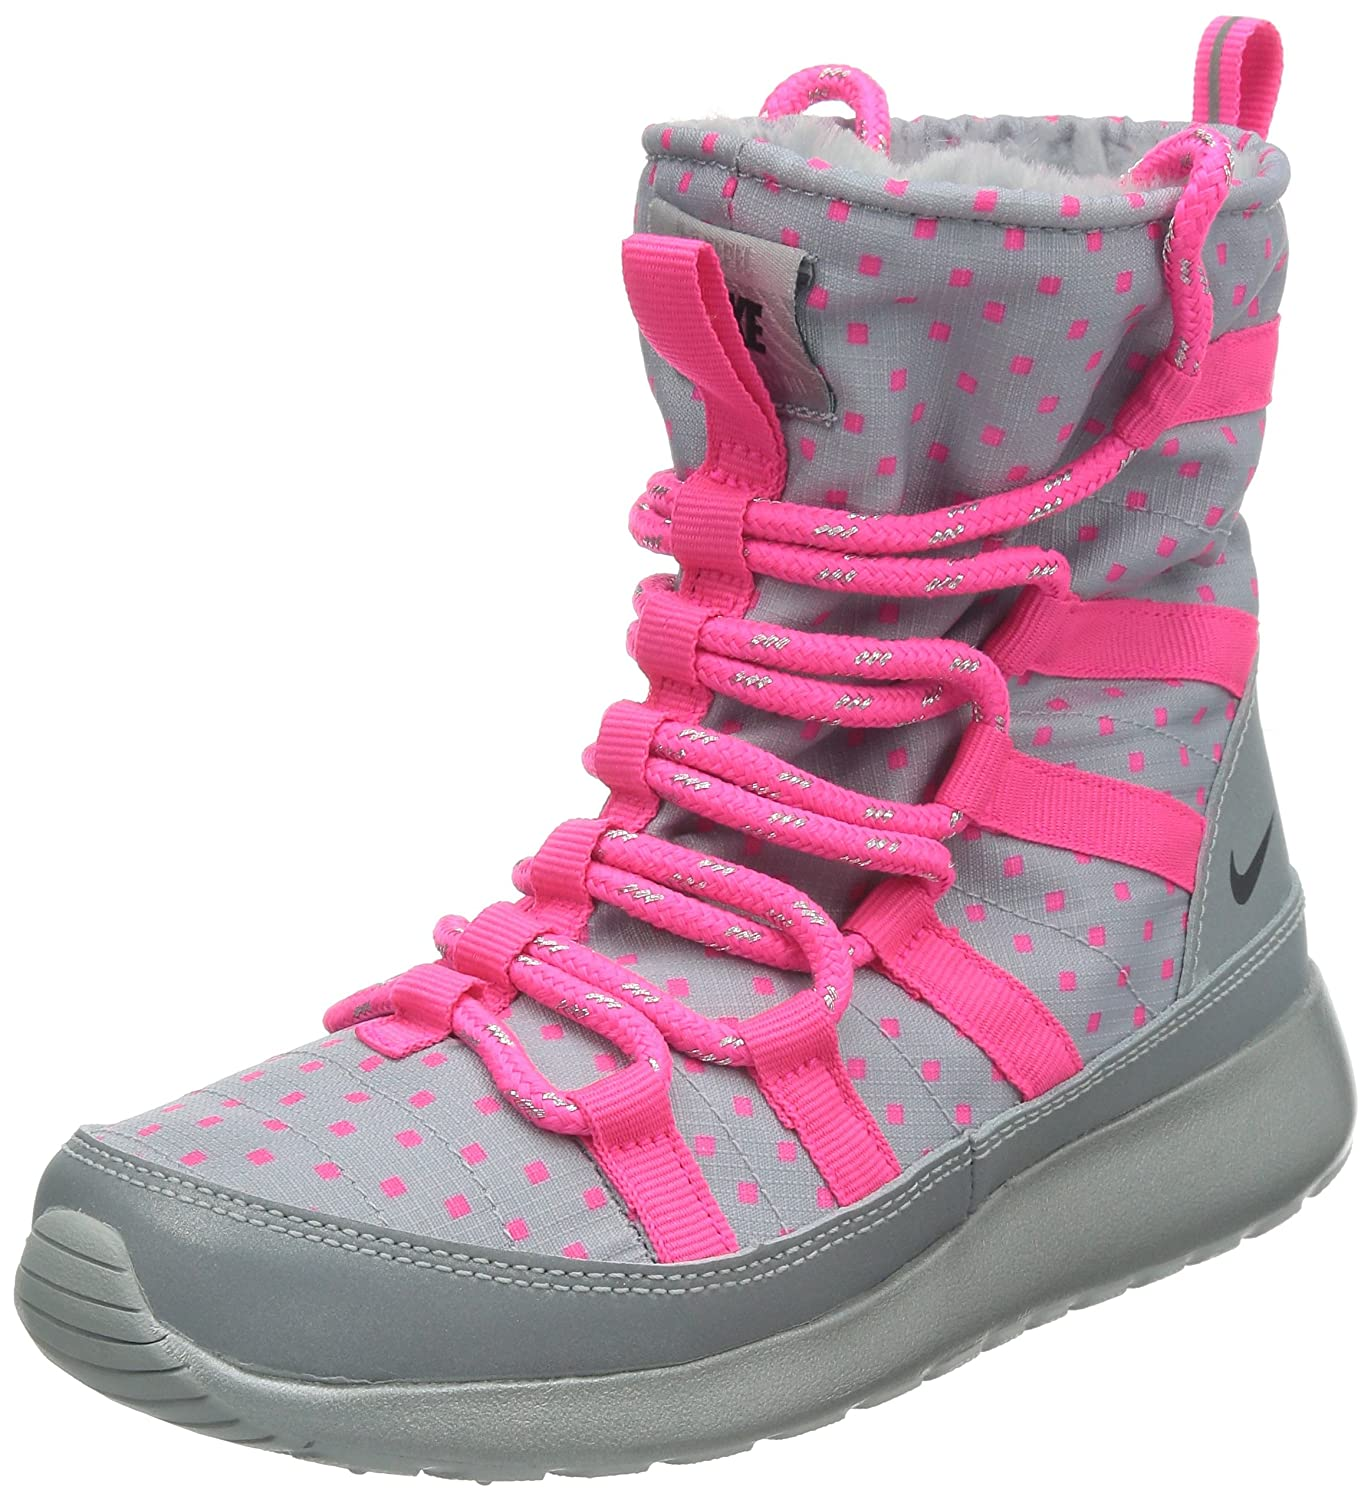 Nike Roshe Run Hi Flash (GS) Girl's Sneakerboot